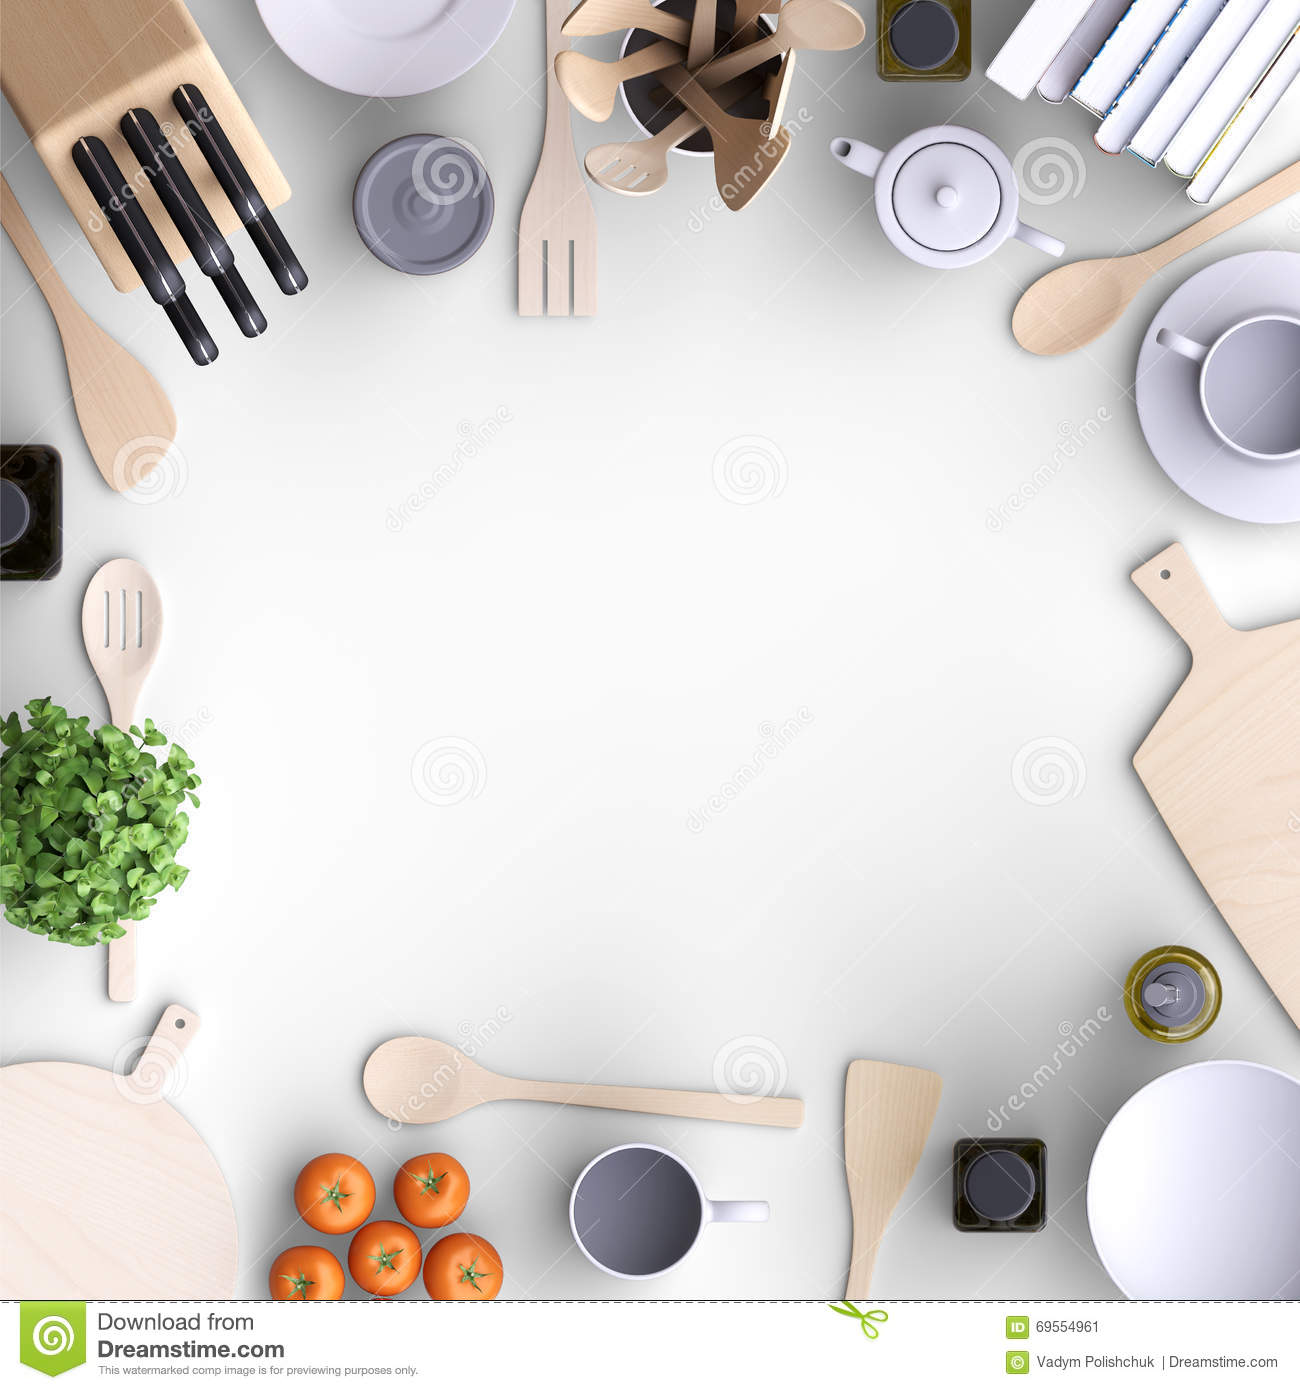 Branding Mock Up Kitchen With Table And Kitchenware Stock Illustration Image 69554961